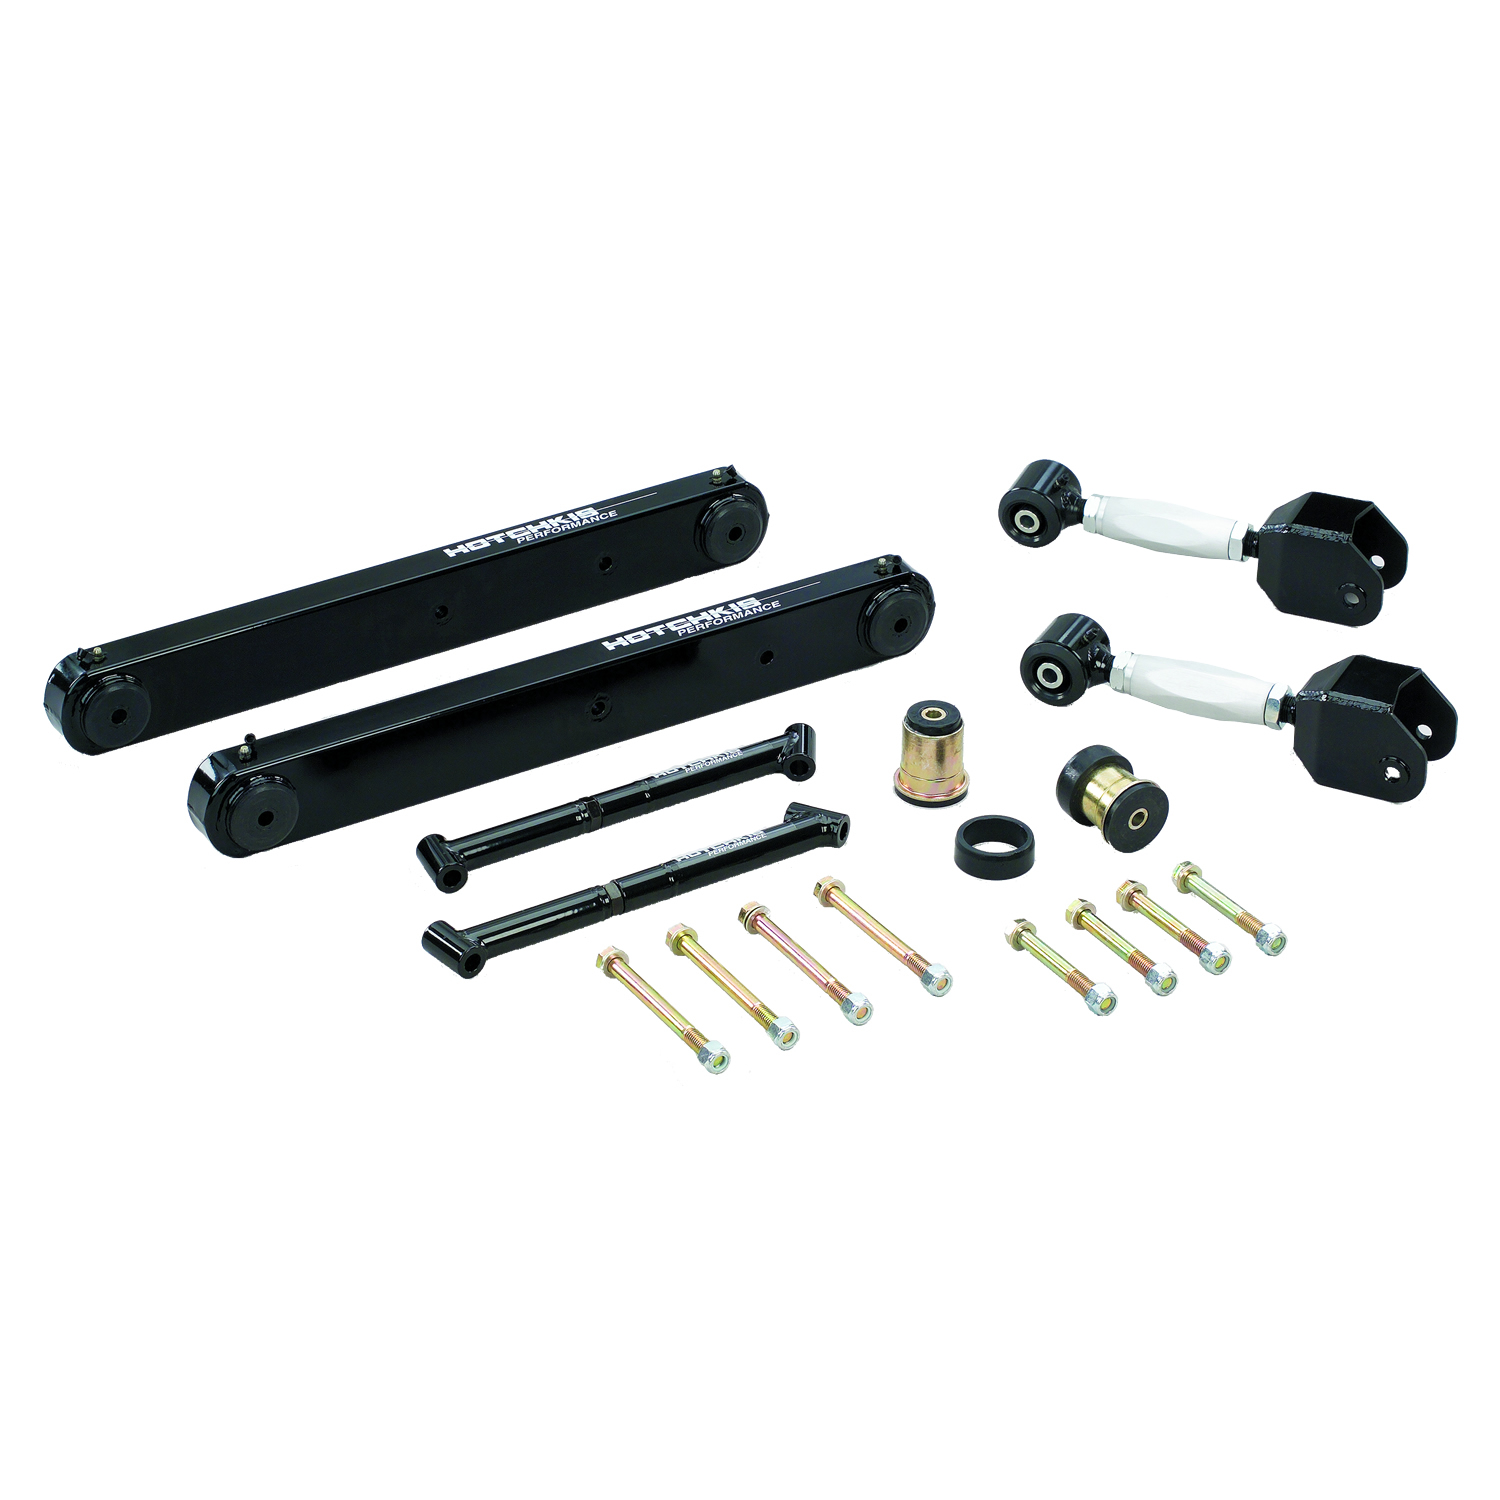 1978-1988 GM A/G Body Adjustable Rear Suspension Package